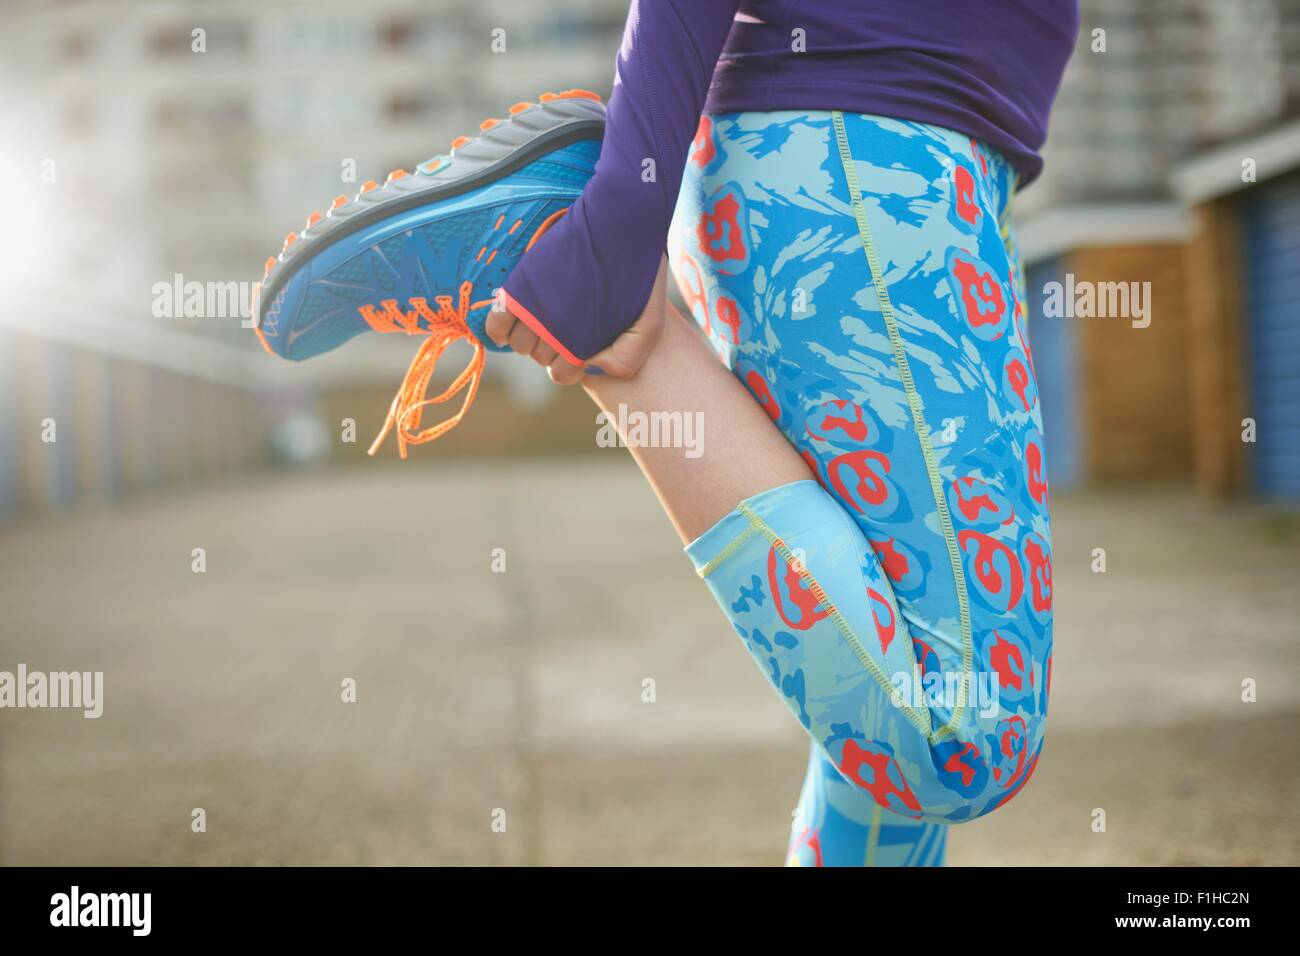 Cropped view of woman bending leg and stretching before exercise - Stock Image